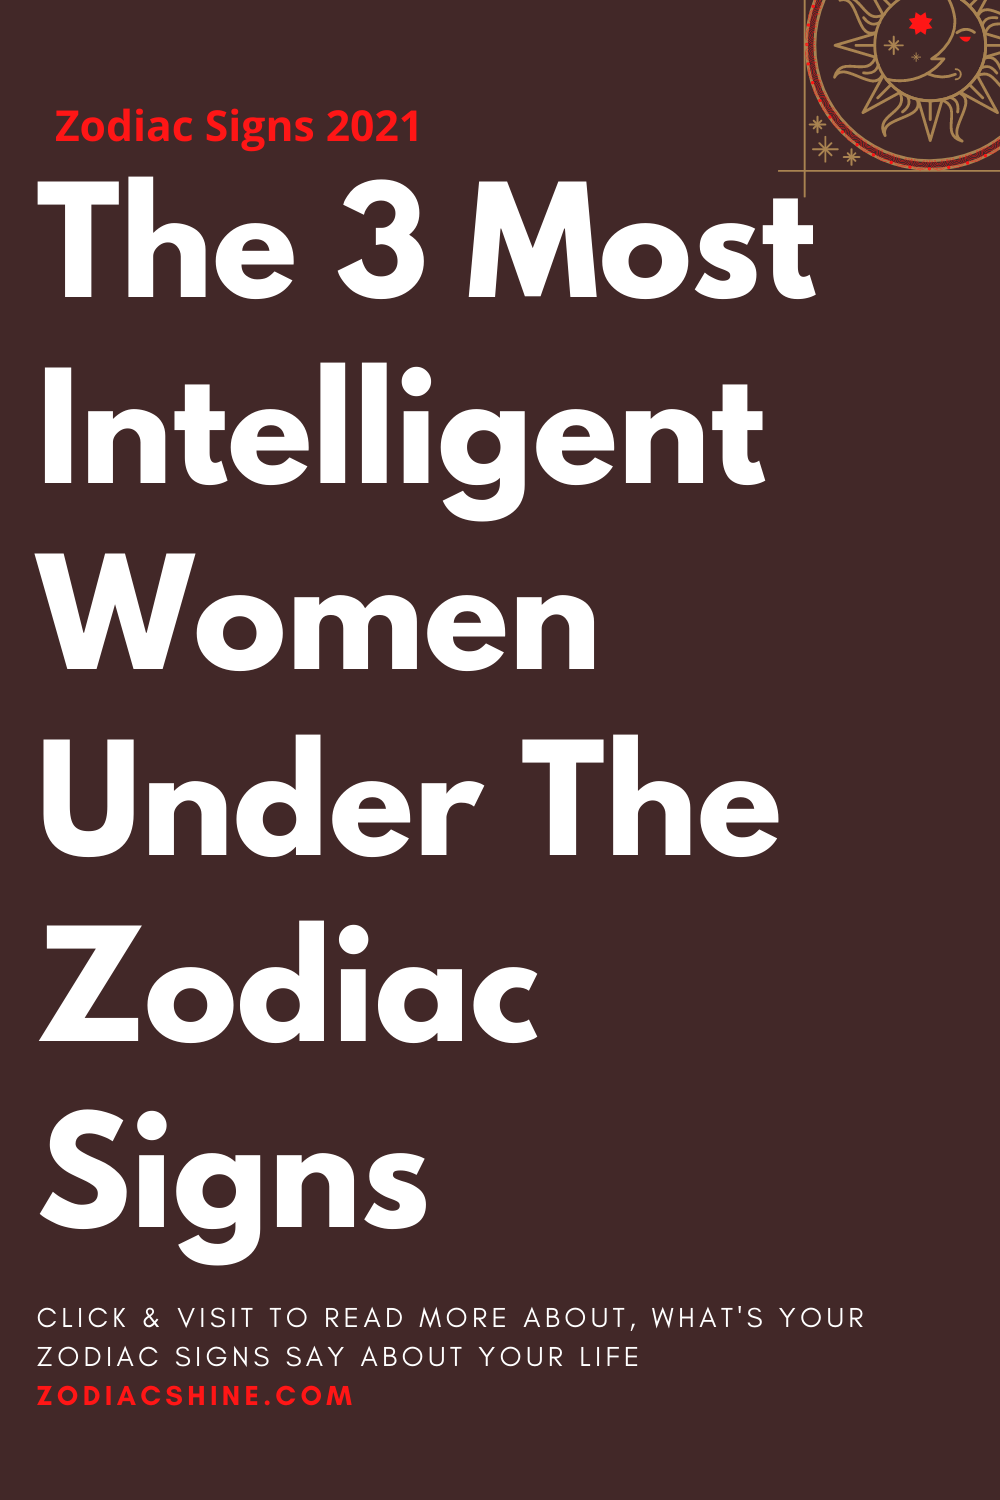 The 3 Most Intelligent Women Under The Zodiac Signs